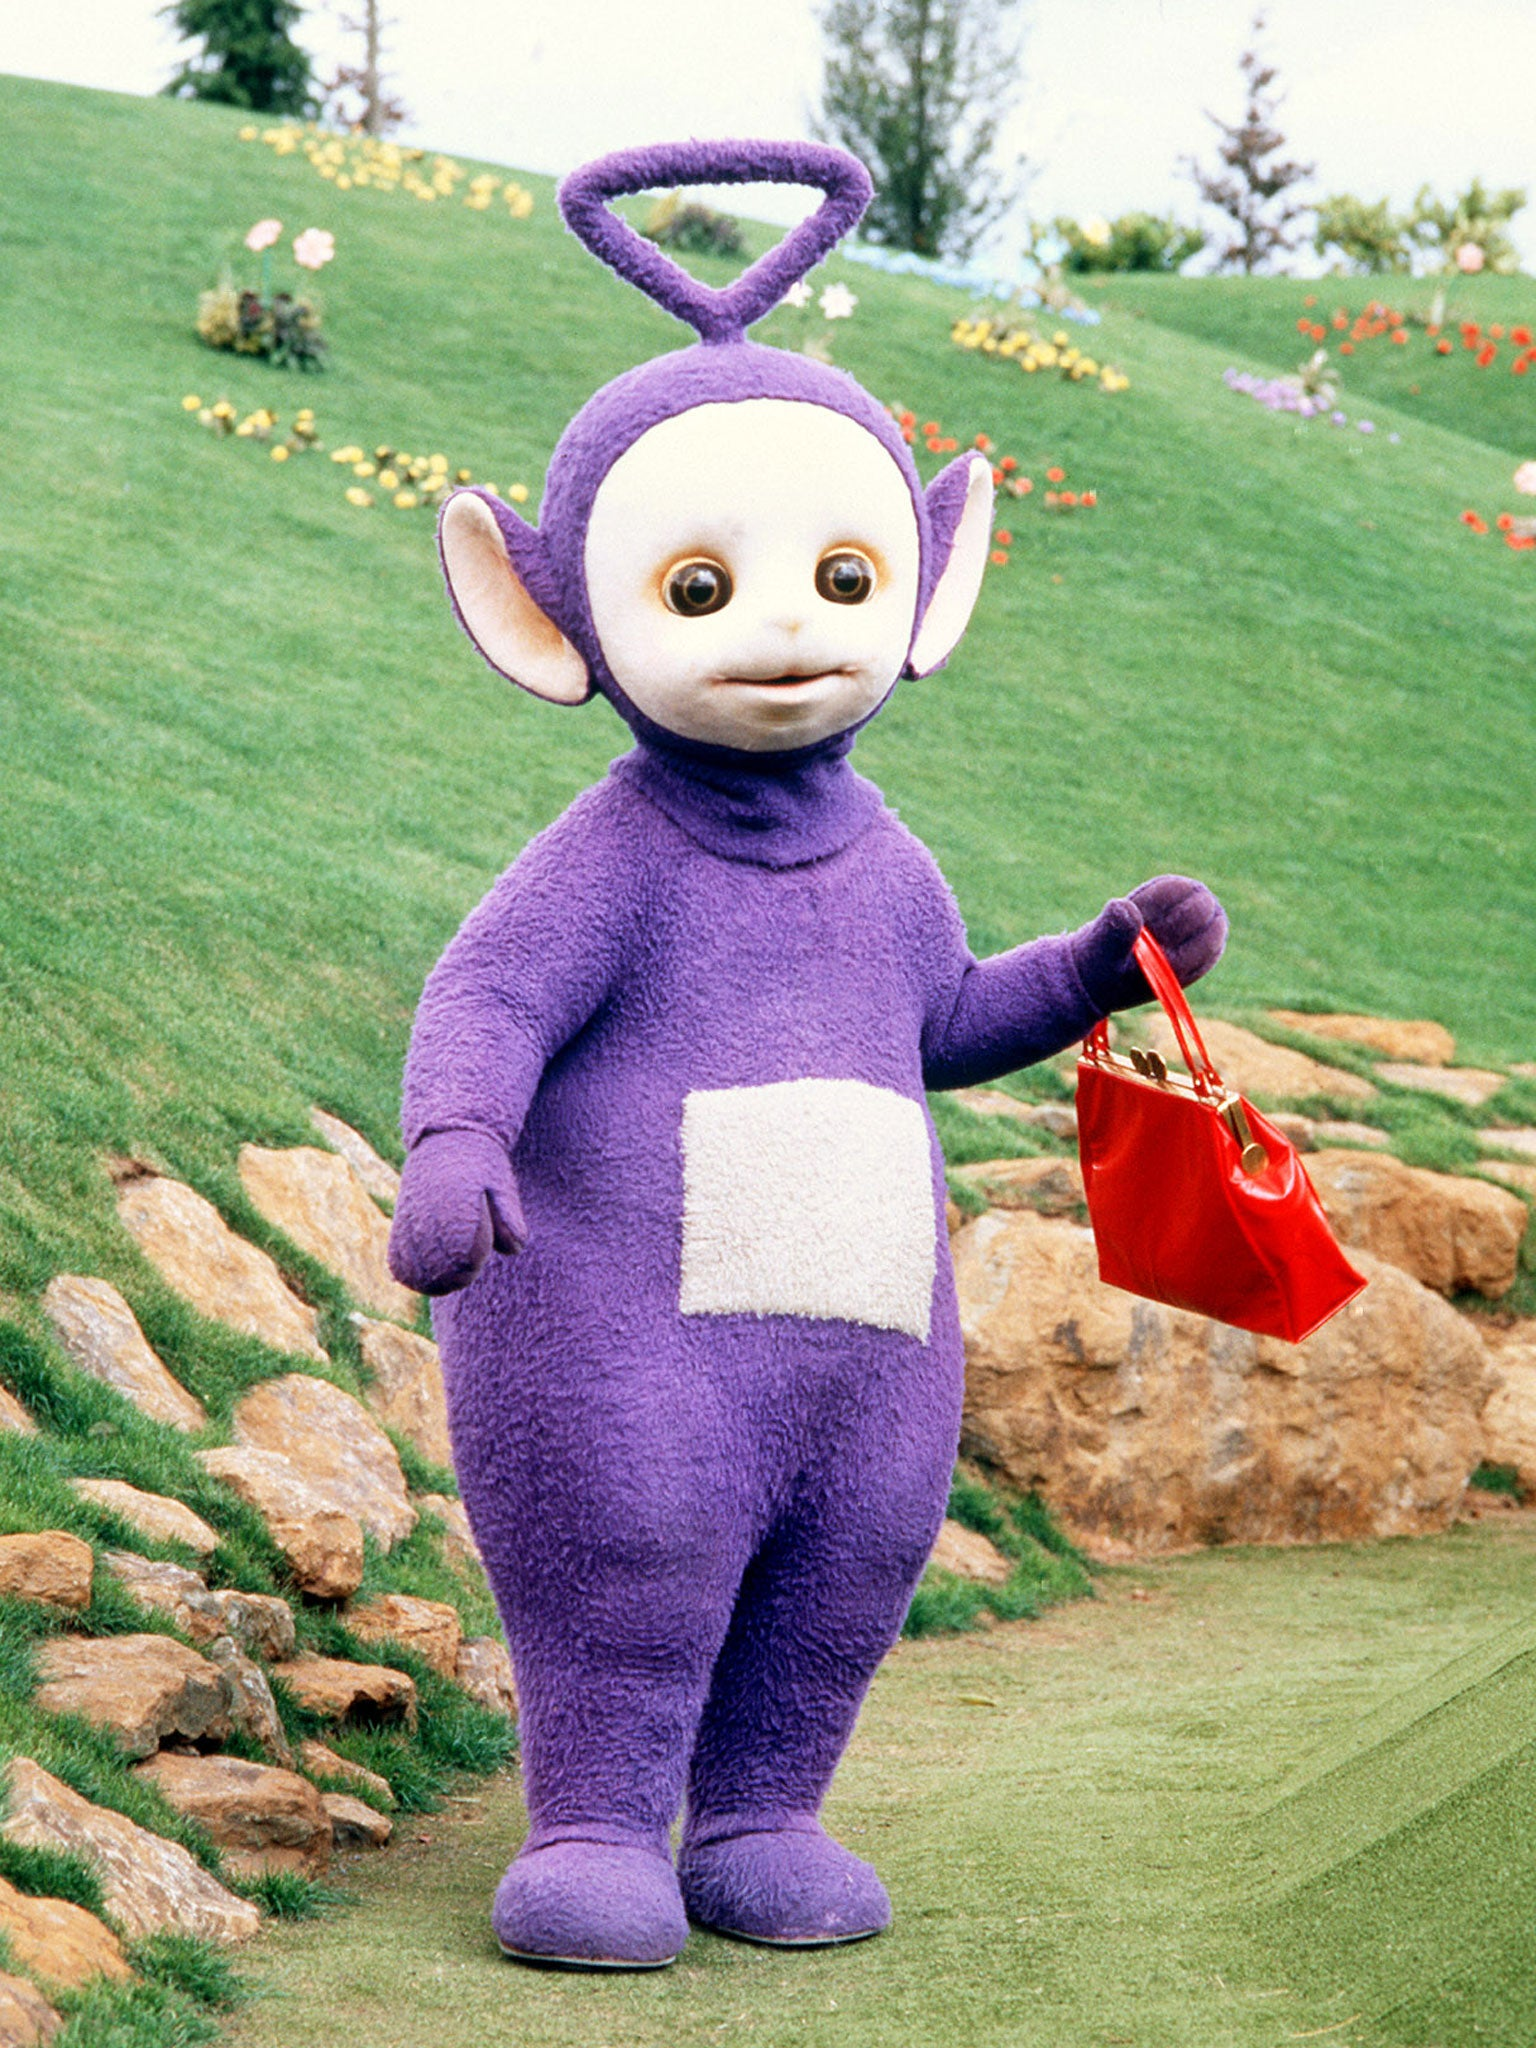 Page 3 Profile: Tinky Winky, Children's TV Star | The ...